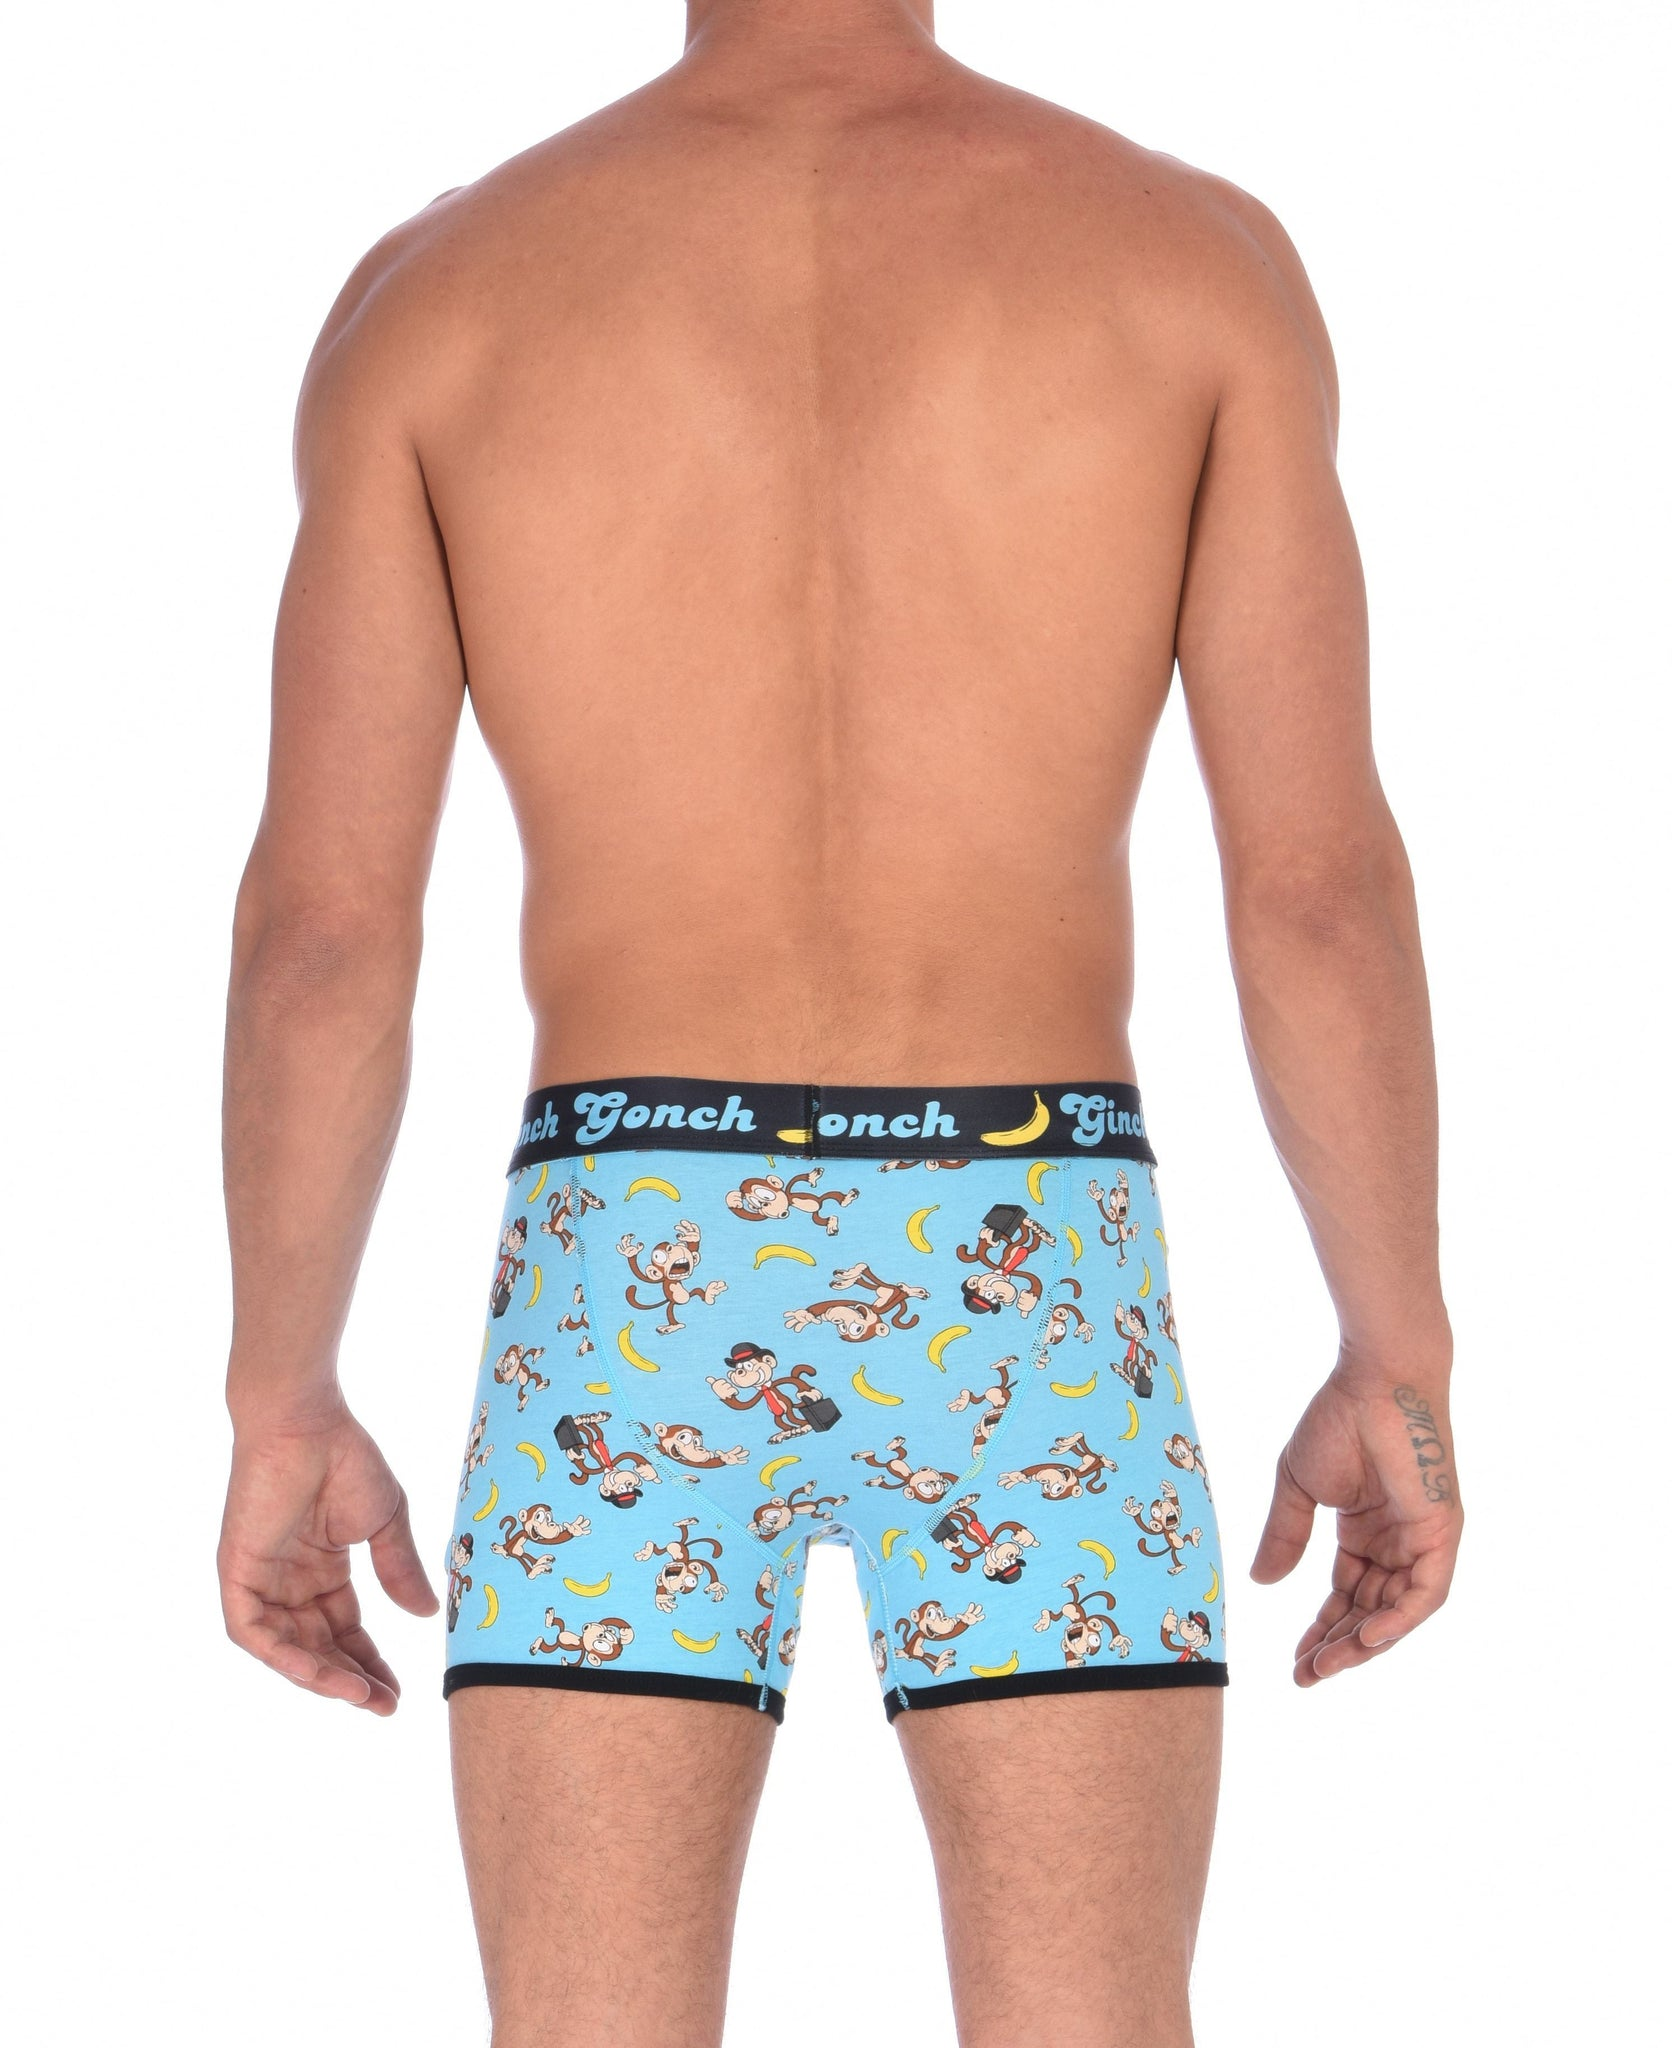 Ginch Gonch Monkey Business Boxer Brief Trunk with blue background, monkeys, and bananas. Black trim and printed waistband with Ginch Gonch and bananas. Back